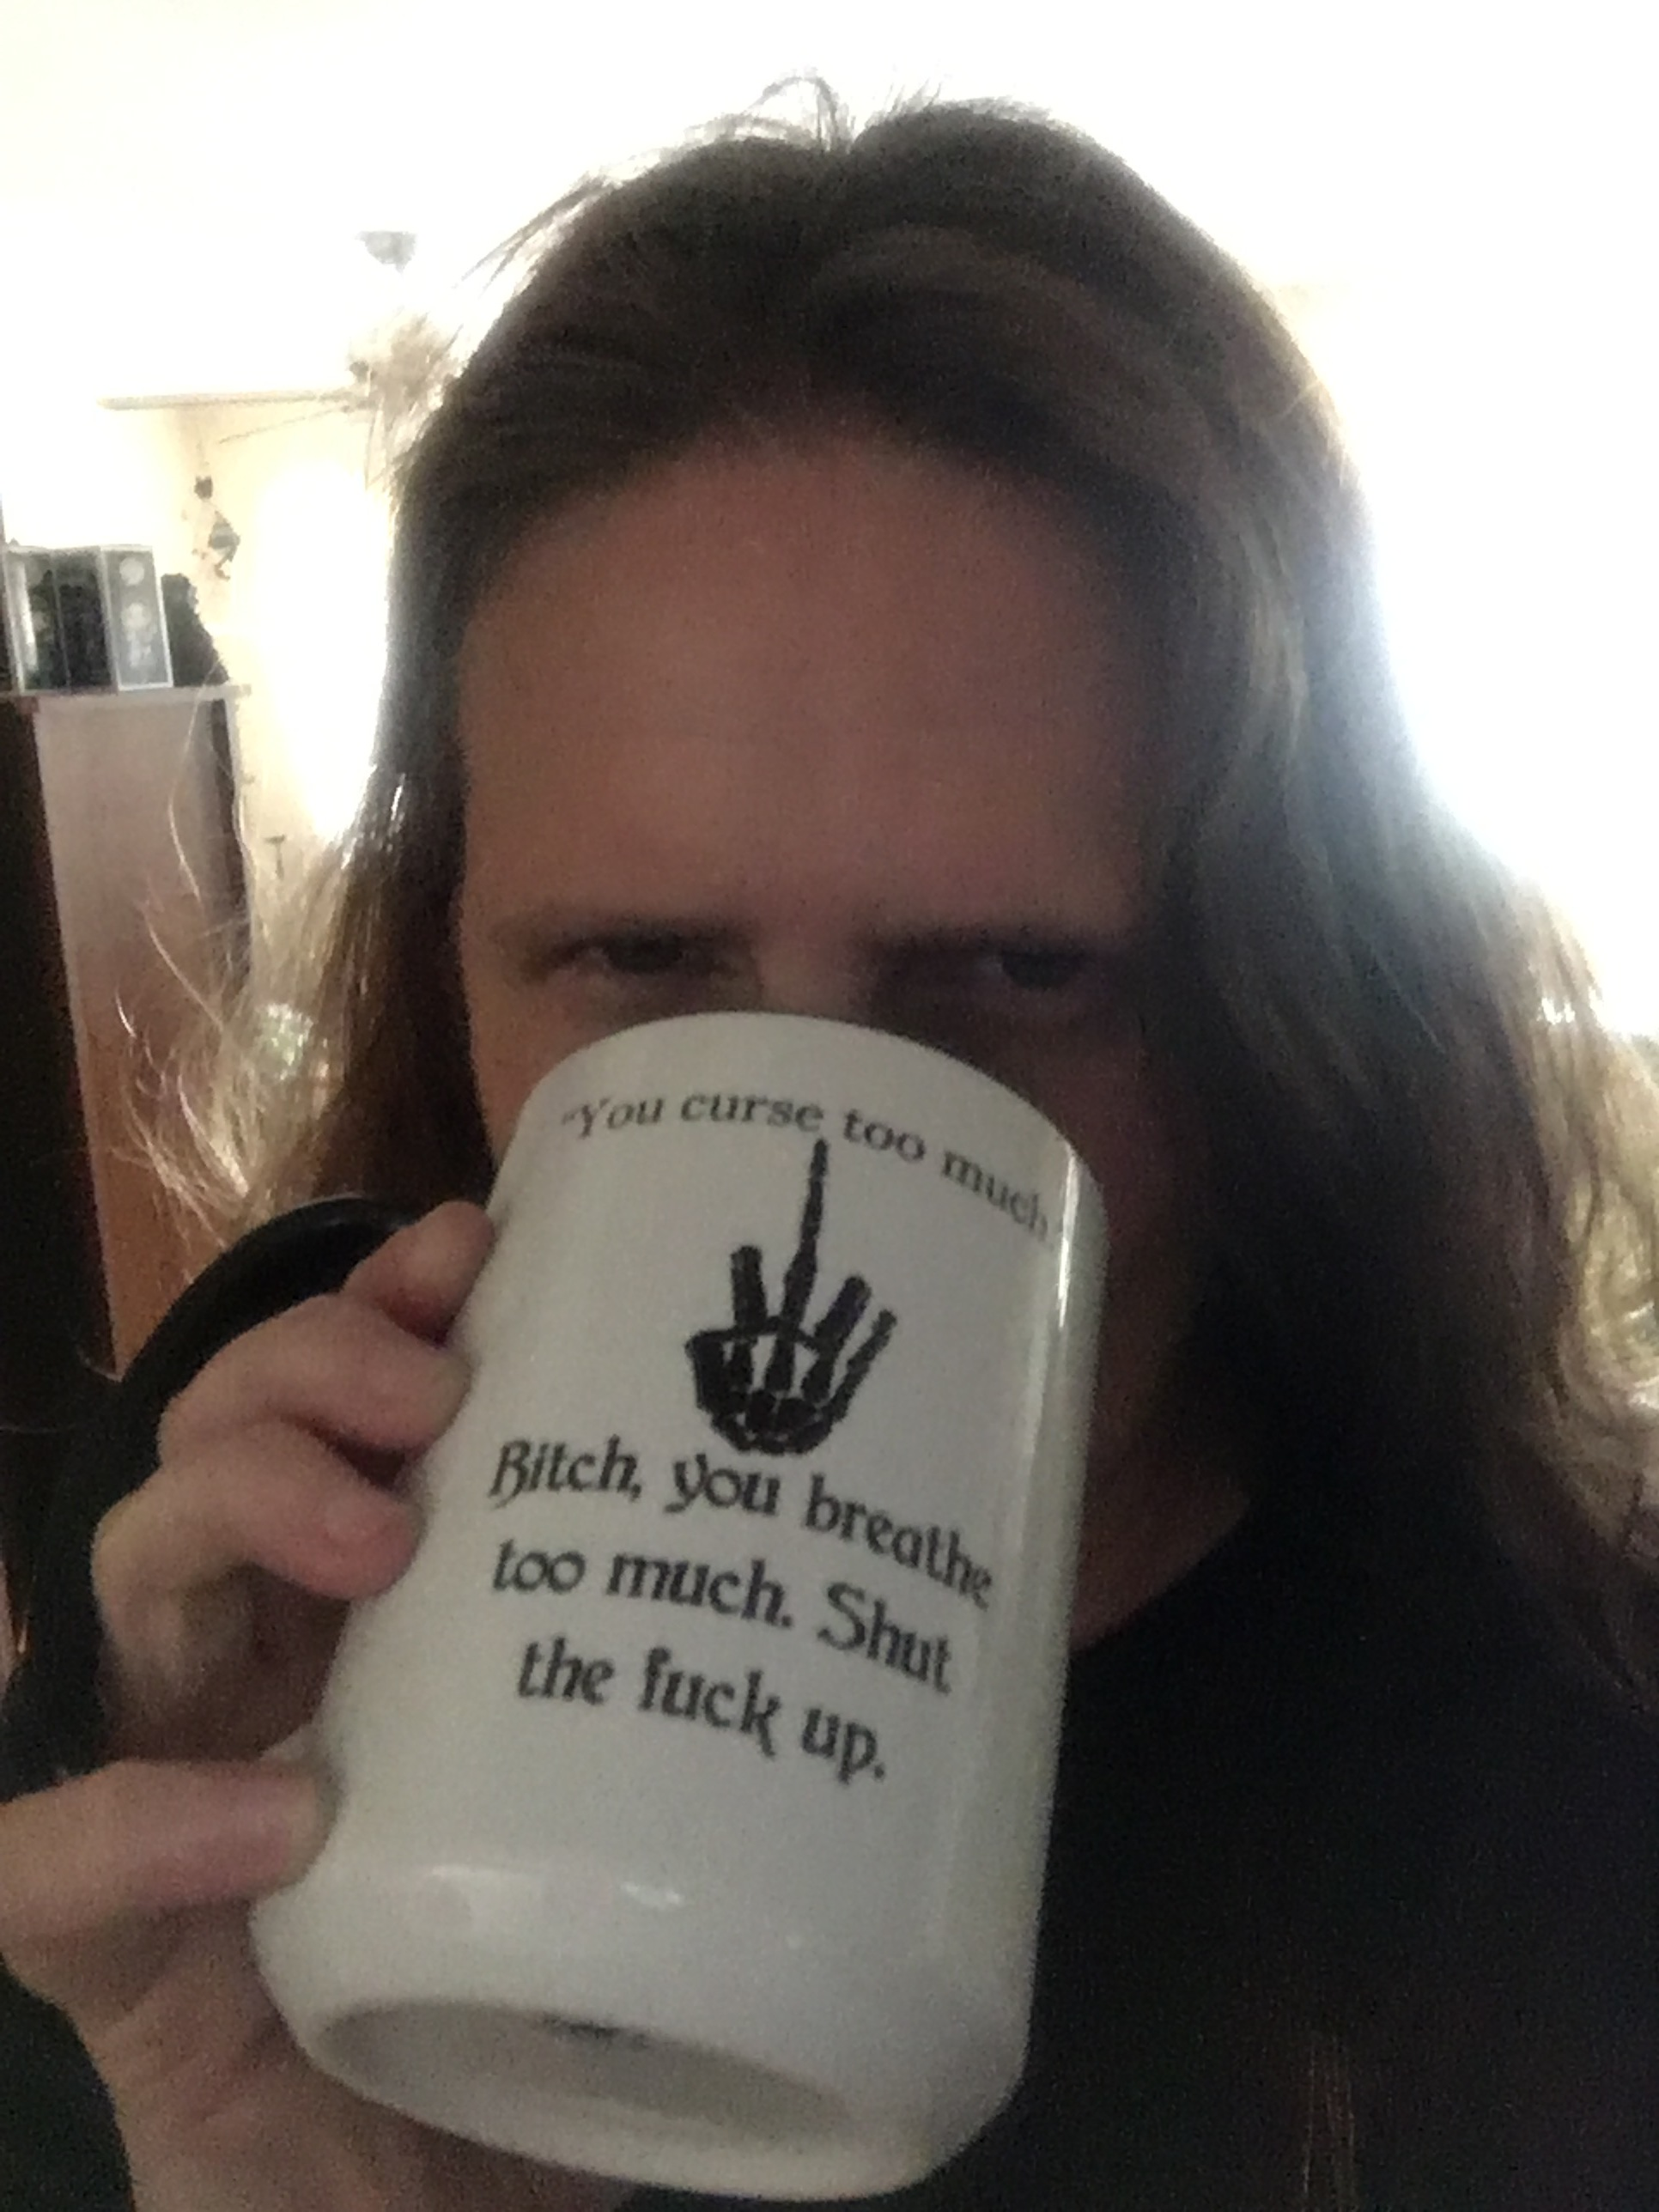 My new coffee mug that has been banned from work.